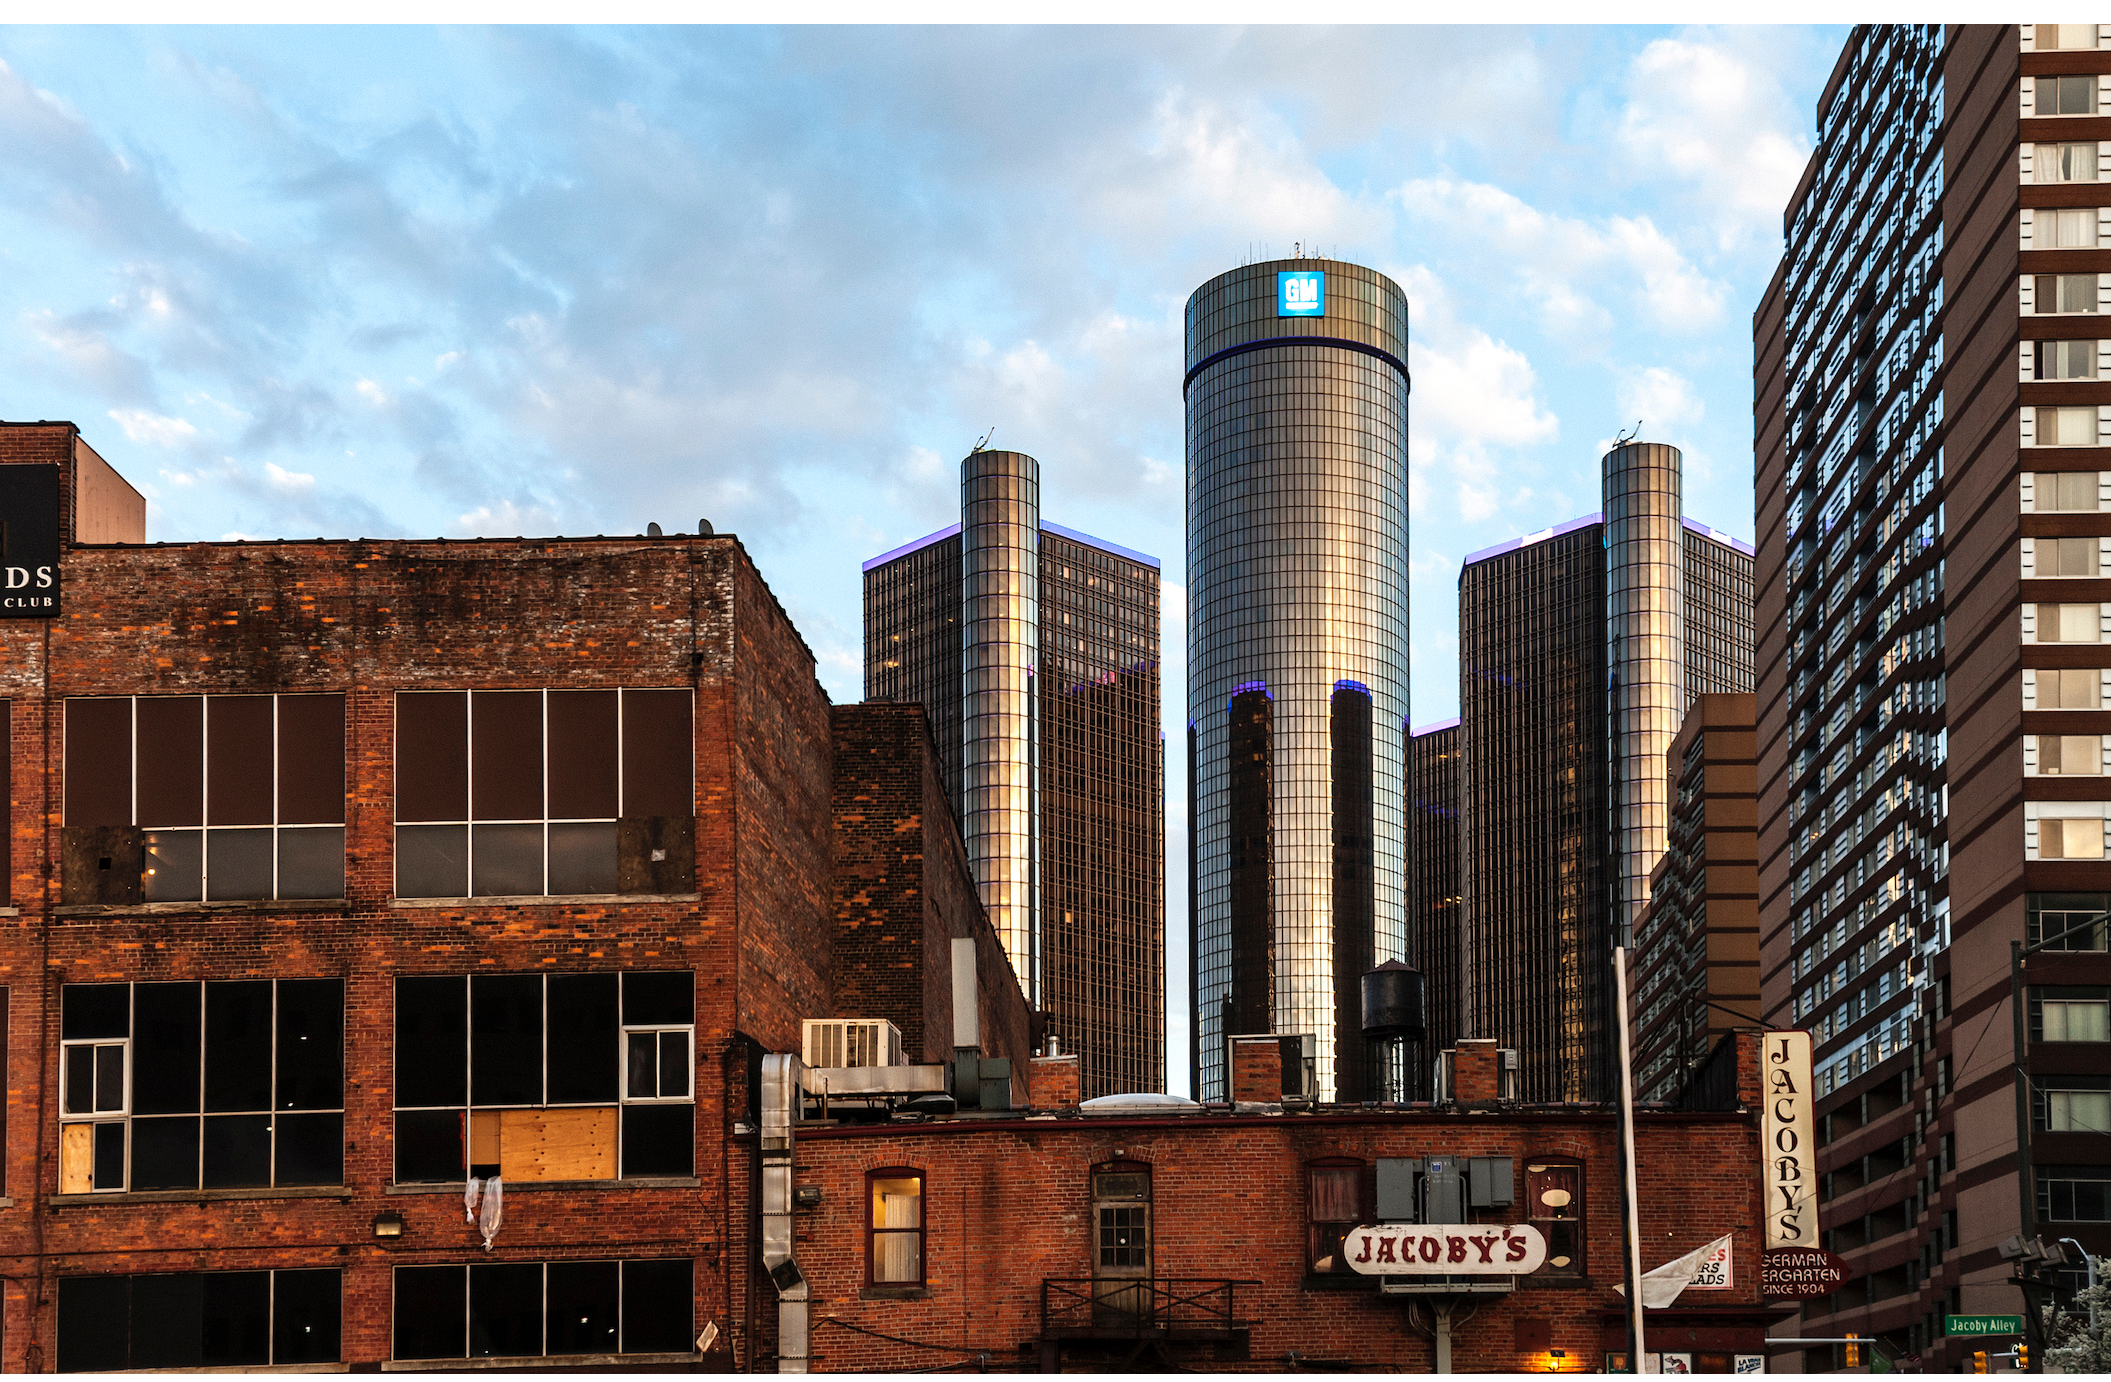 """As cities are gentrified by developers and new residents, their work is often cast as saving the city and repopulating an empty city in crisis, despite the fact that those spaces are occupied by longtime residents and workers. This is not a race-neutral discourse. Jessi Quizar's research on Detroit shows the connection between the discourse around """"urban pioneers"""" to Detroit and settler colonialism. And while Quizar's work makes this connection eminently clear about white gentrifiers in a majority–African American Detroit, her work forces us to consider the language around gentrification more broadly: who is made visible and who is erased in policies about and discussions of urban development?"""